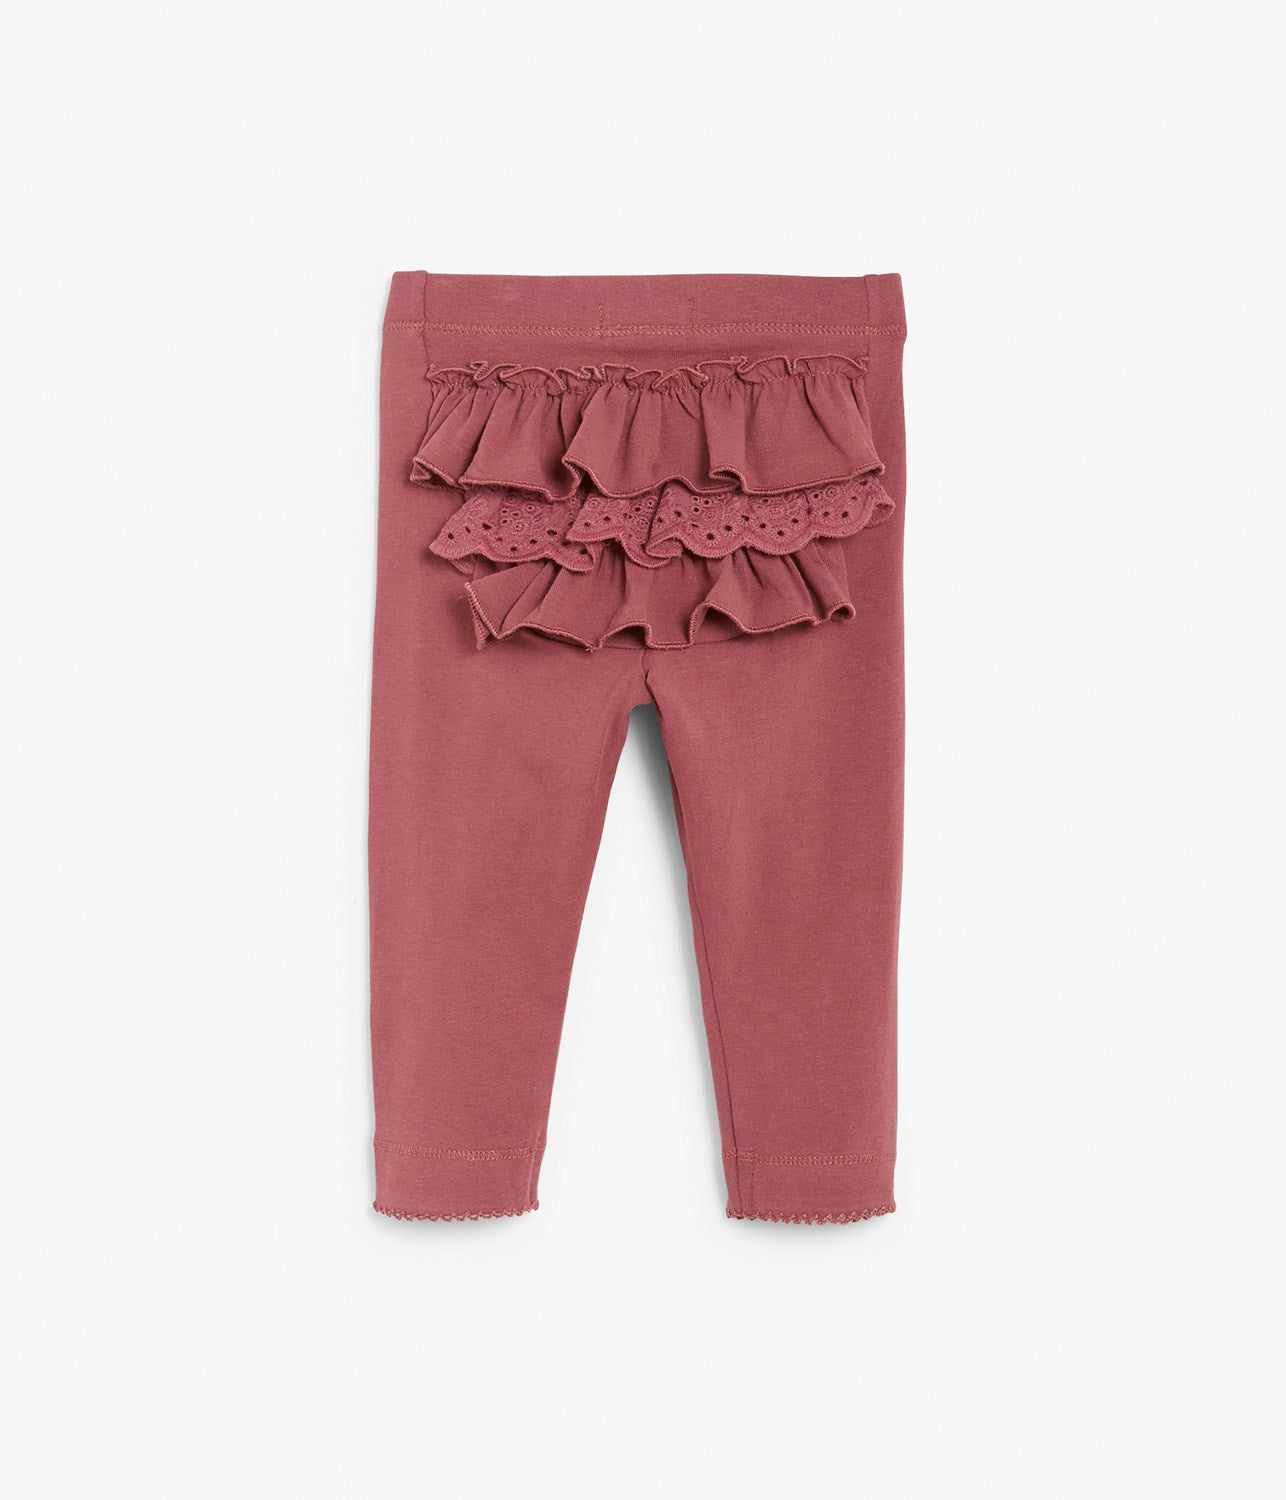 Baby pink legging with ruffles in back